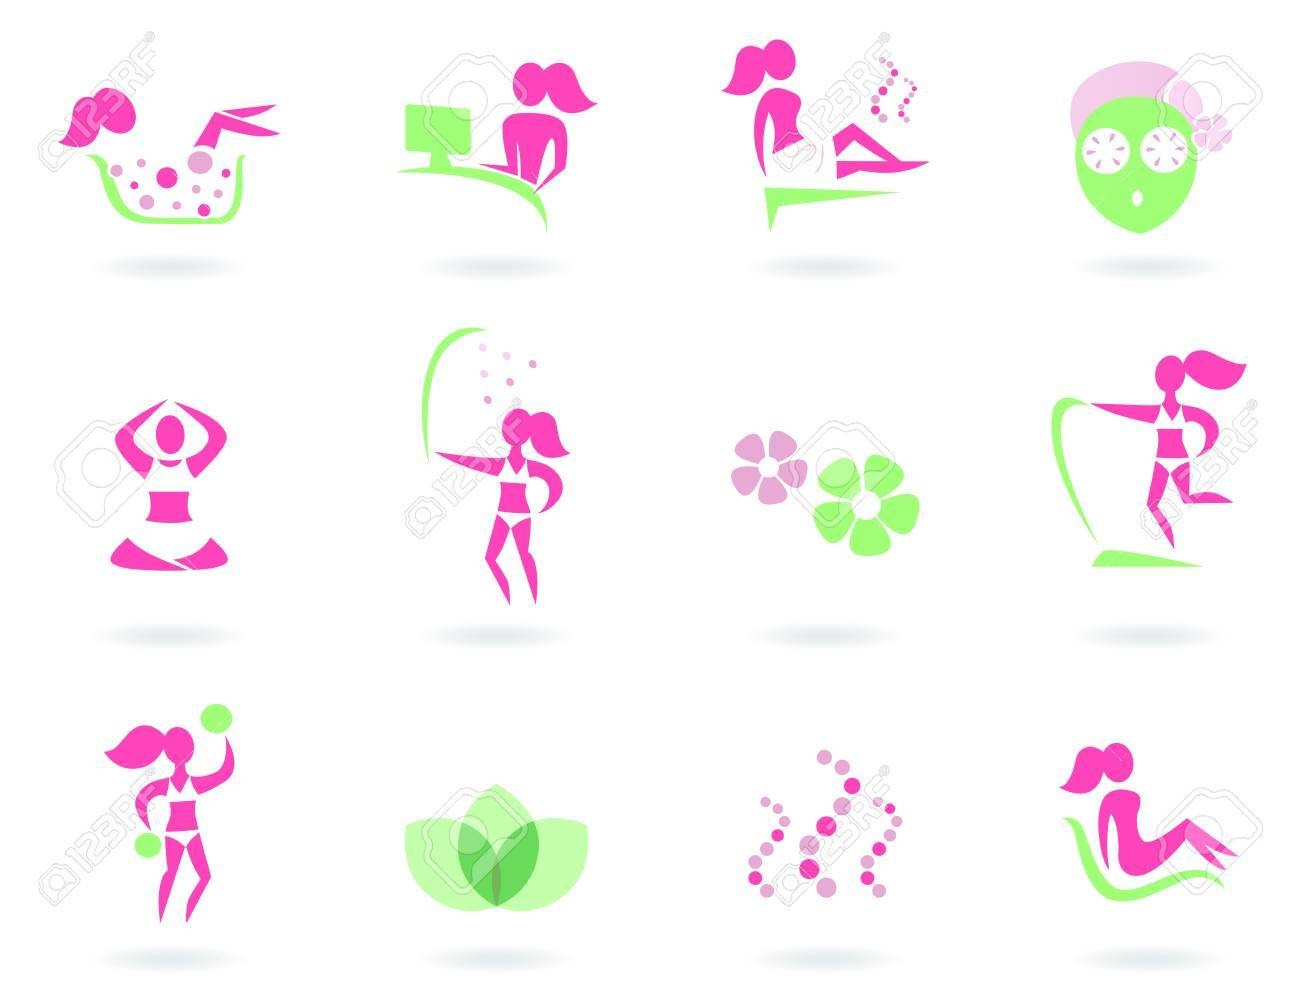 Vector collection of spa and wellness icons - isolated on white background. Stock Vector - 10704704